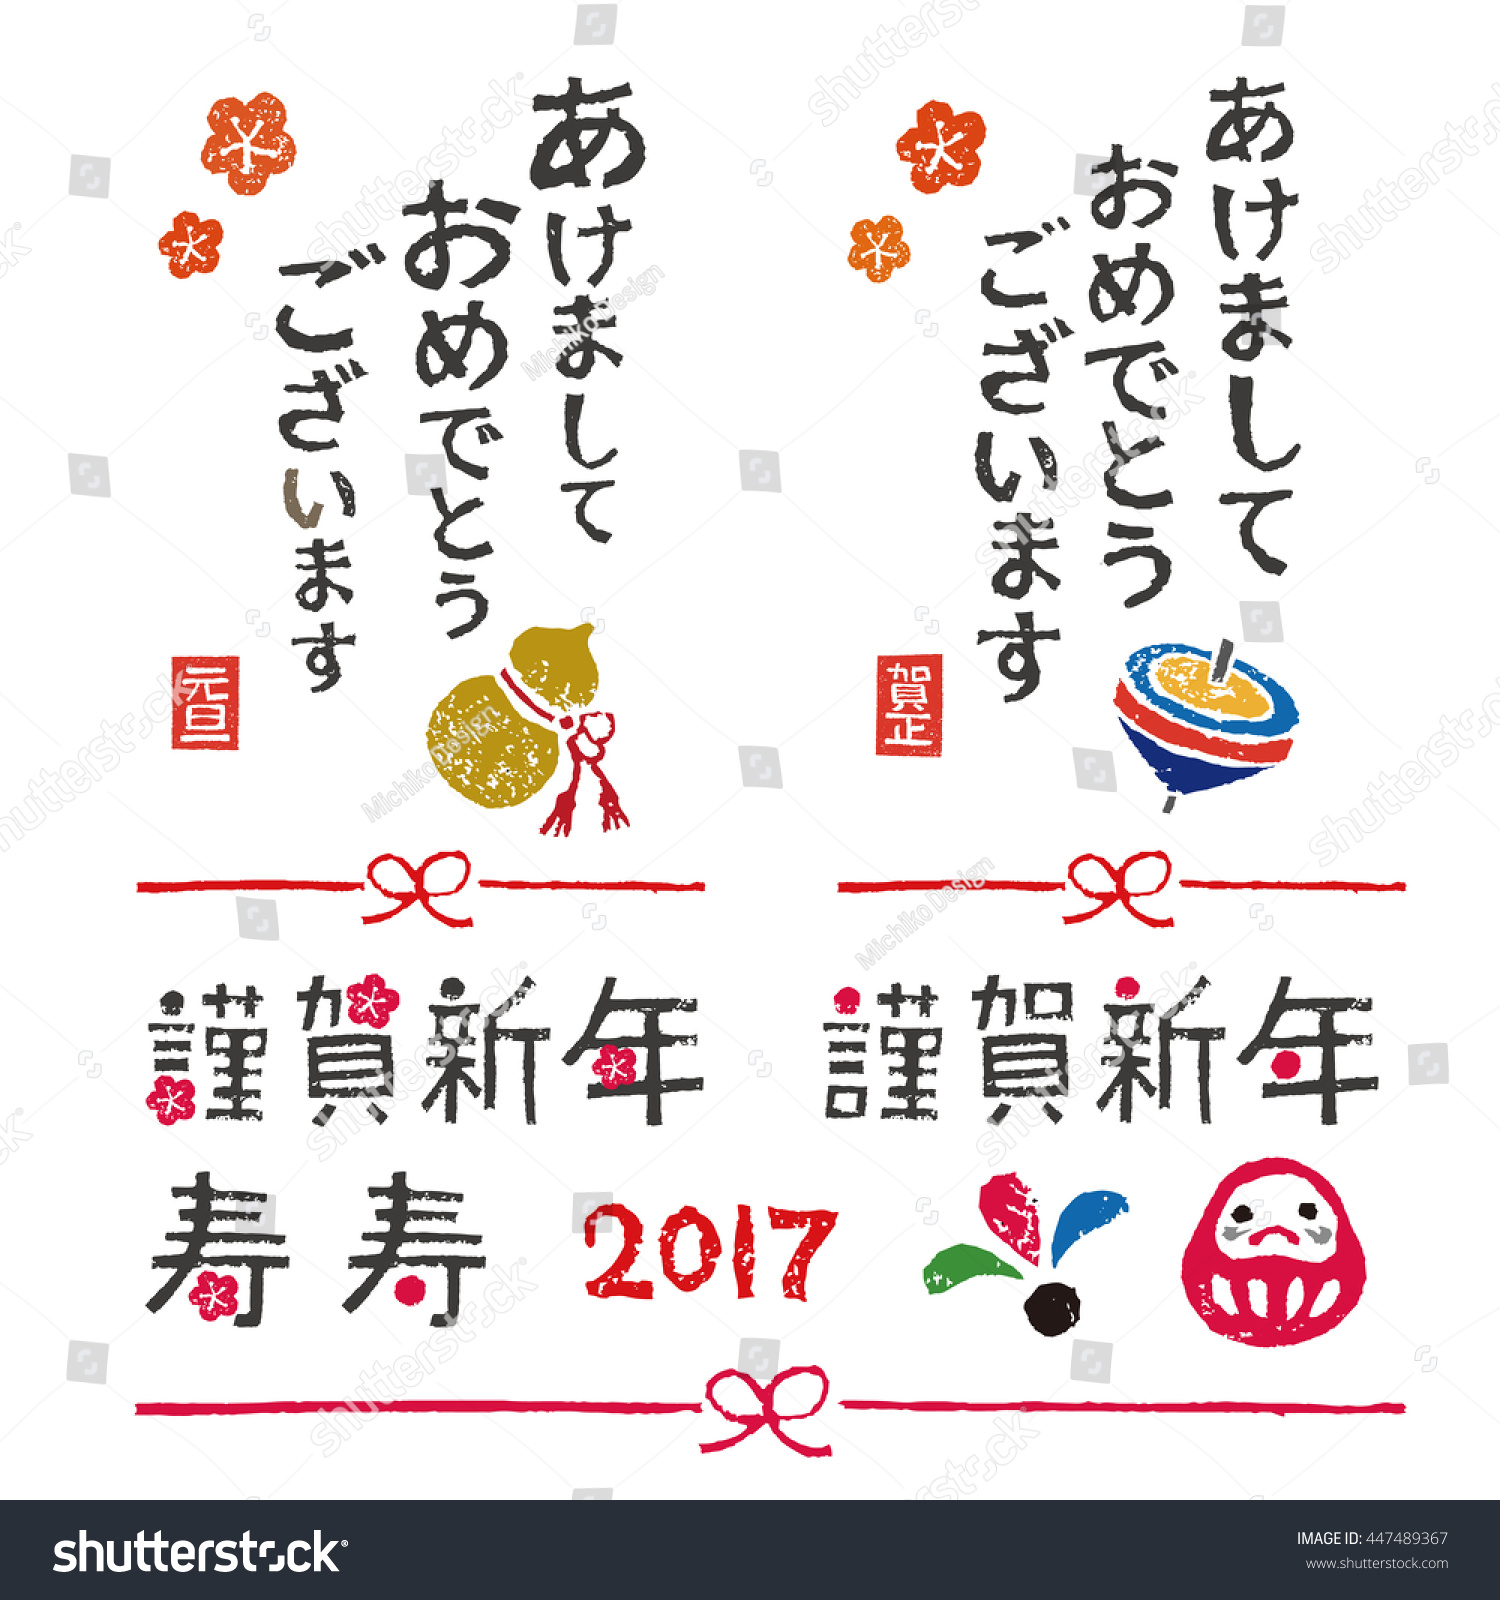 New Year Card Elements Greeting Words Stock Vector 447489367